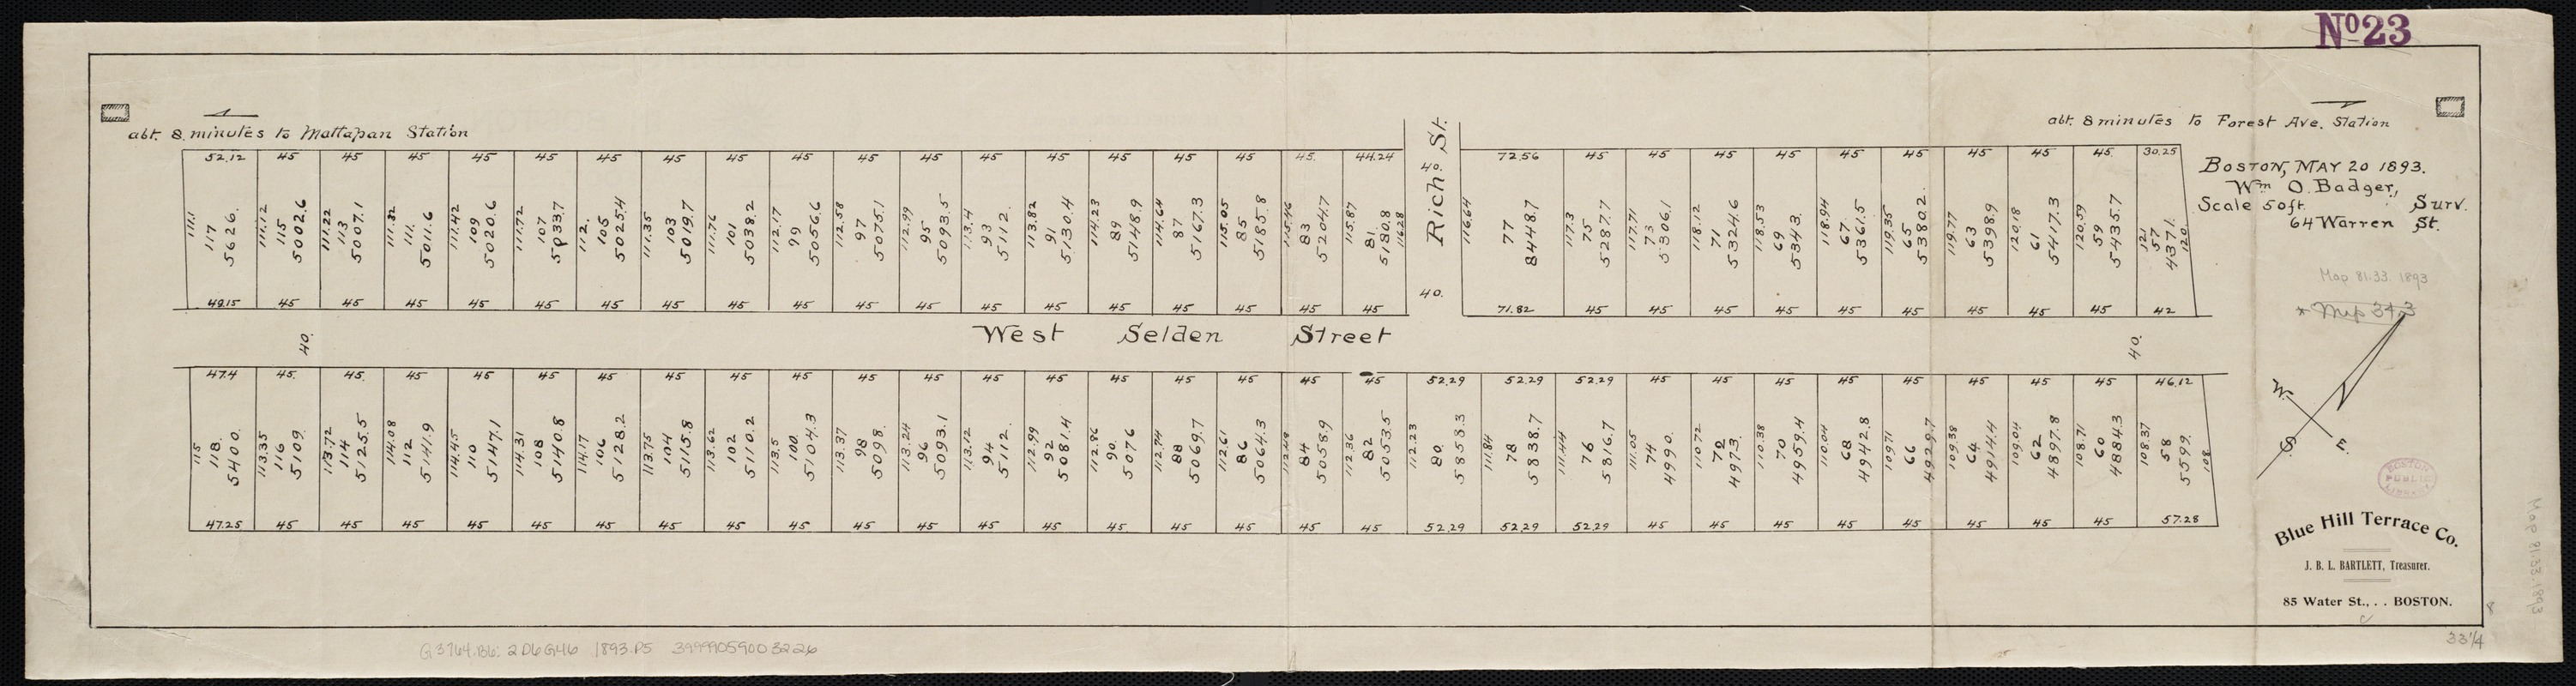 [Plan of lots on West Selden Street, Dorchester]